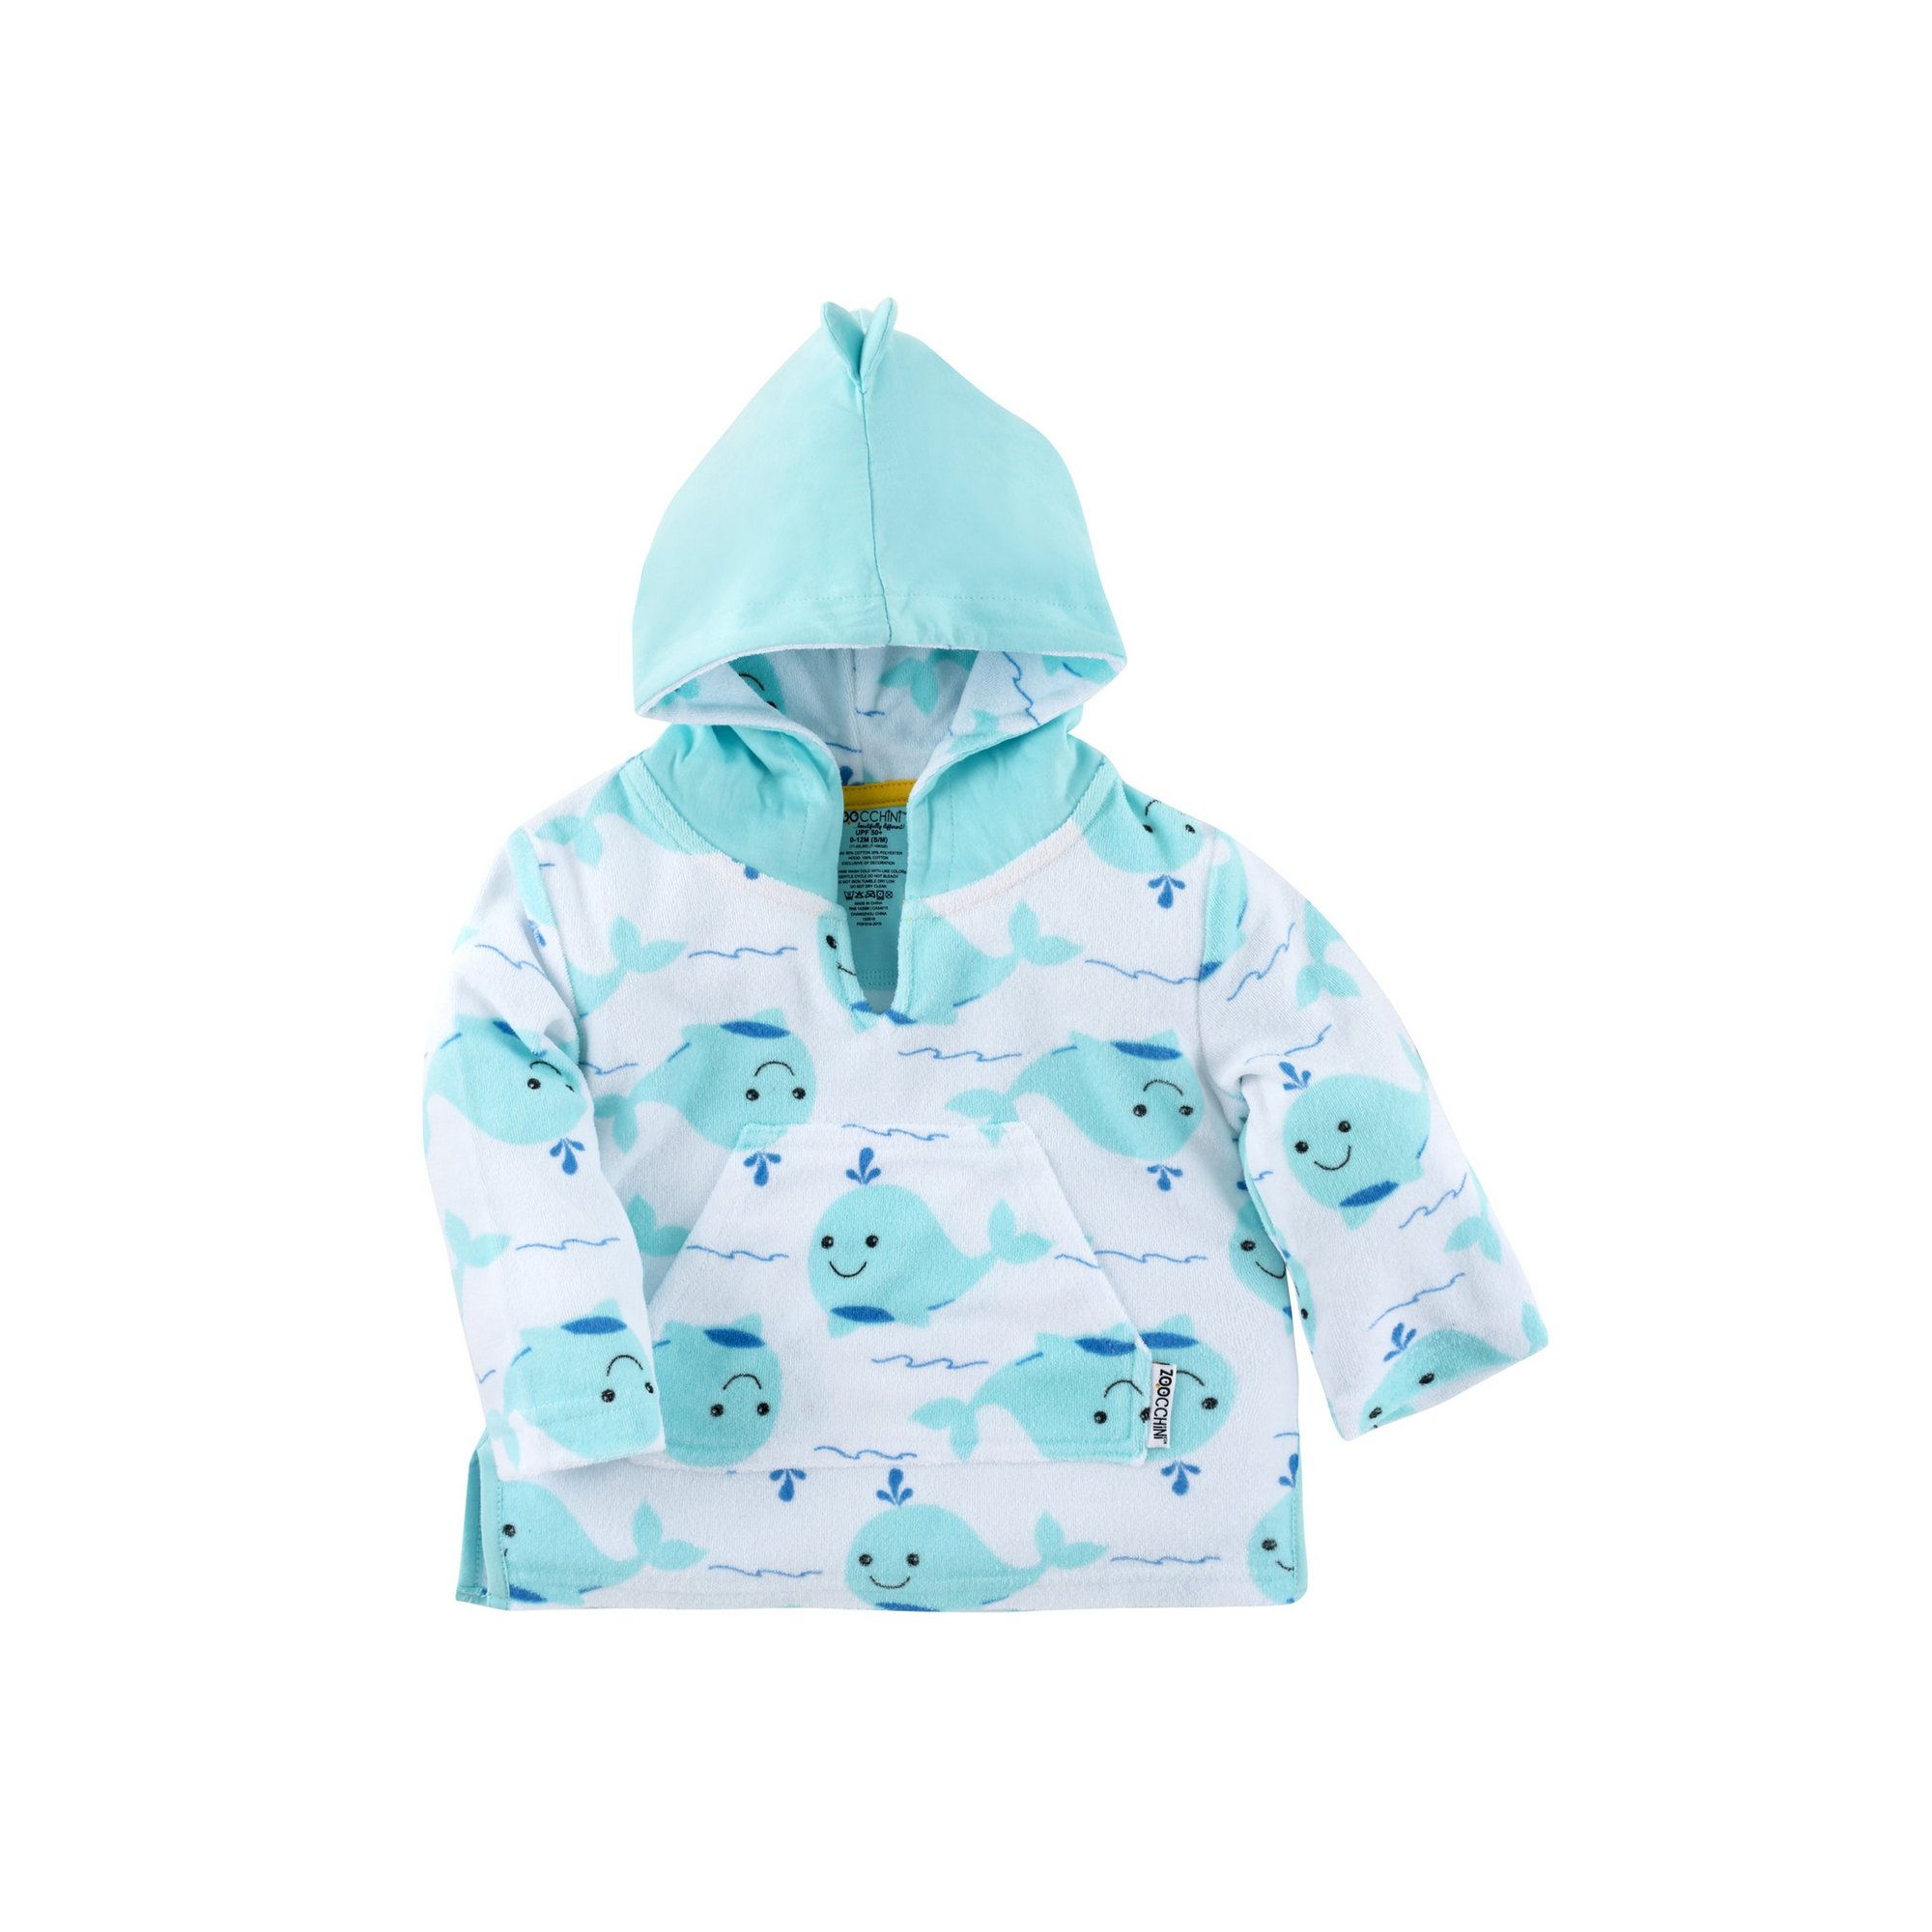 Image of Zoocchini Cotton Babies Cover-Up - Whale